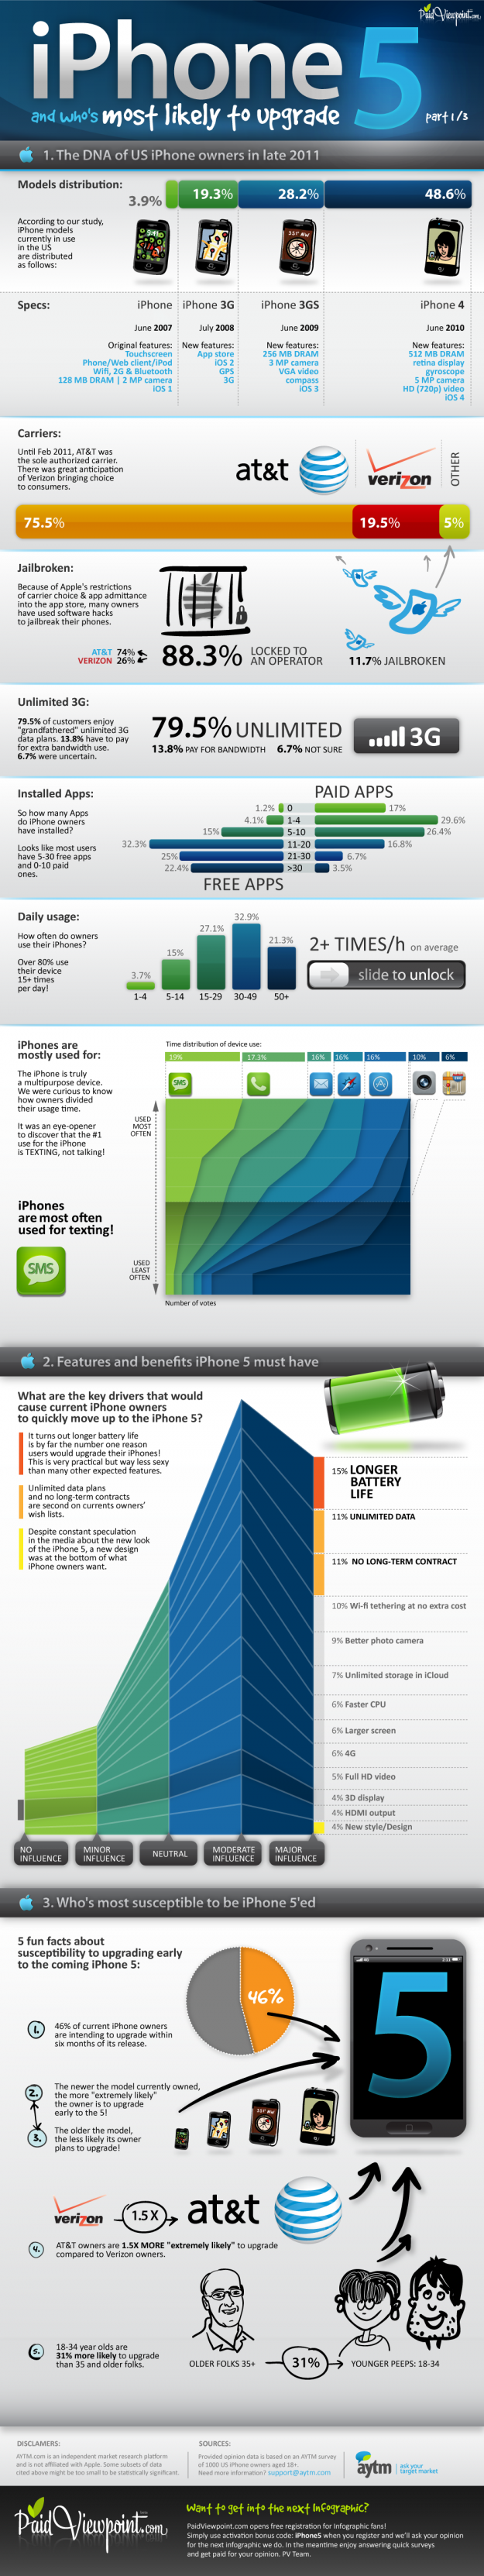 The much anticipated iPhone 5 is on the way.  The question I have for the millions of you out there that already have an iPhone is; Are you upgrading?  Weather you are on the fence, pissed that the 4s came out, or  you're diving head first into the apple iPhone 5 pool, this infographic will point you in the right direction.  What are you expecting to see out of the iPhone 5